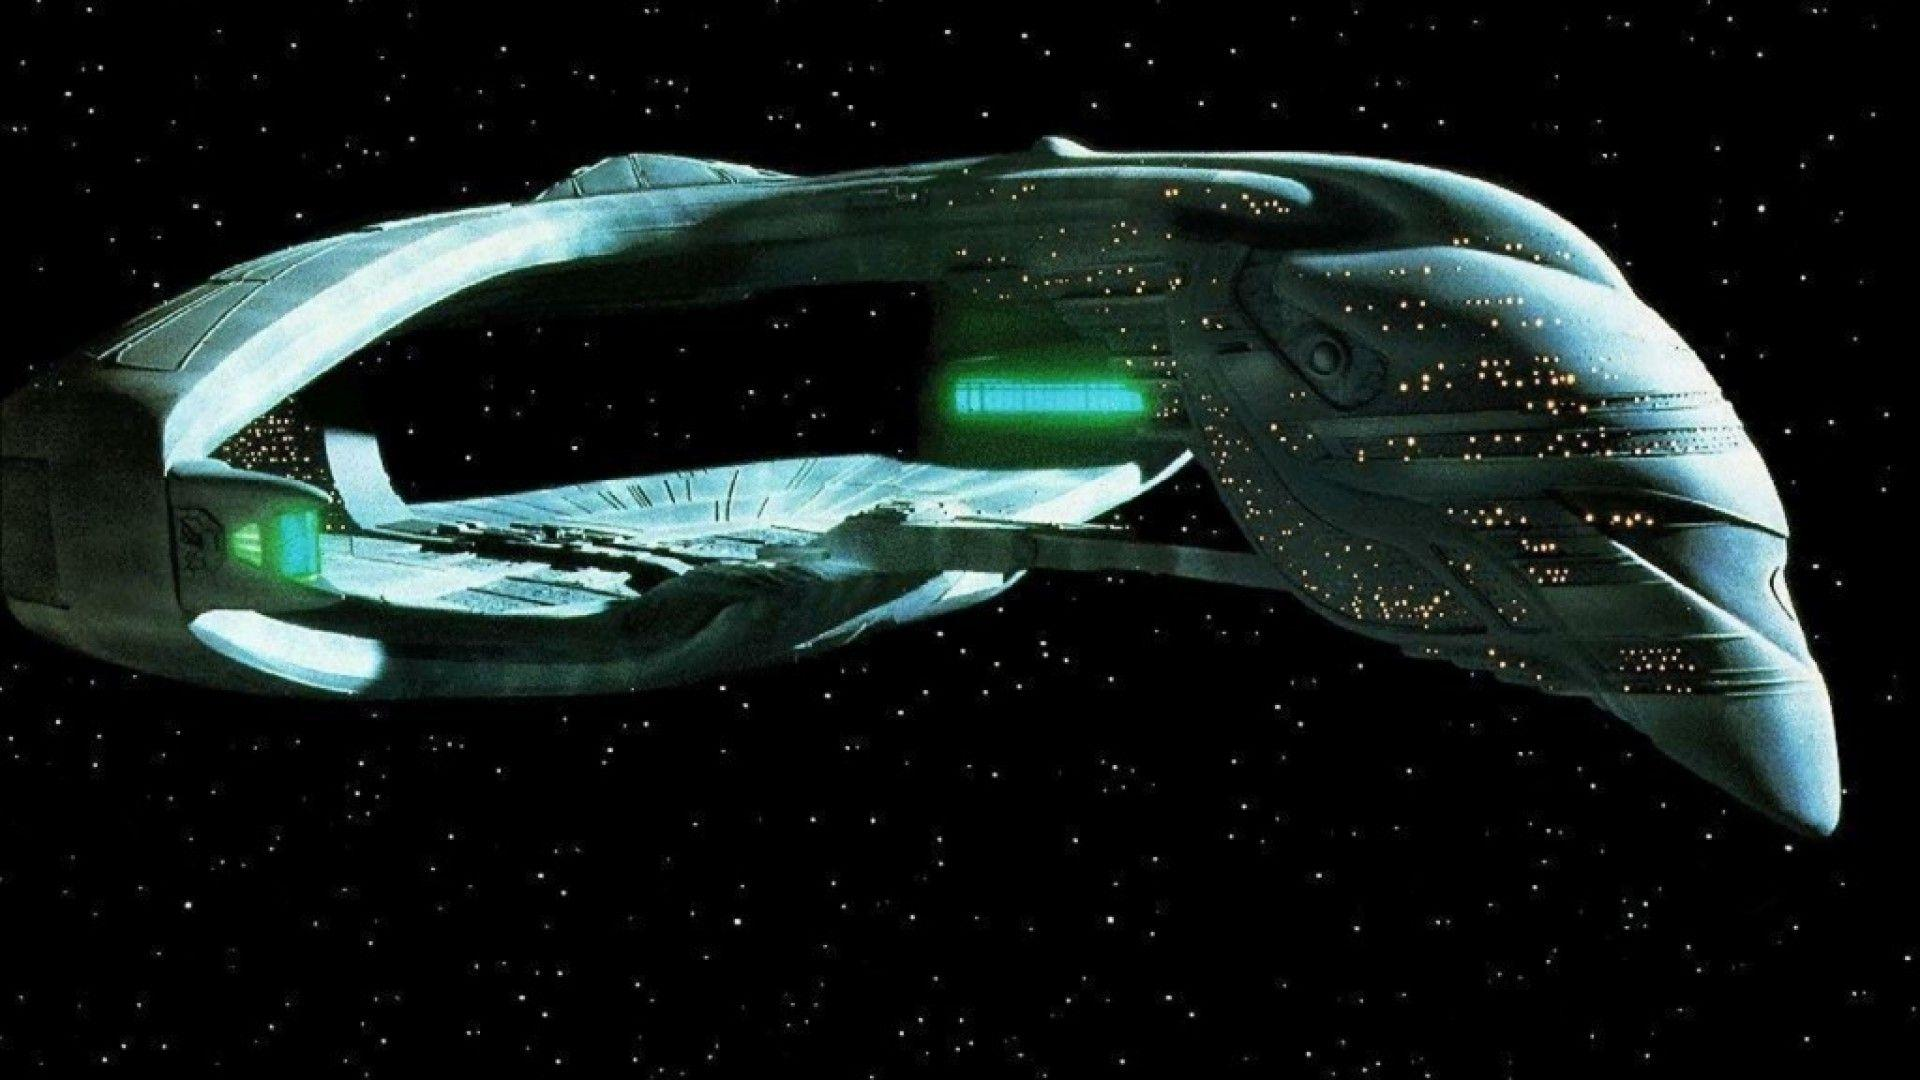 Star Trek 1107 Star Trek Wallpapers 1920x1080